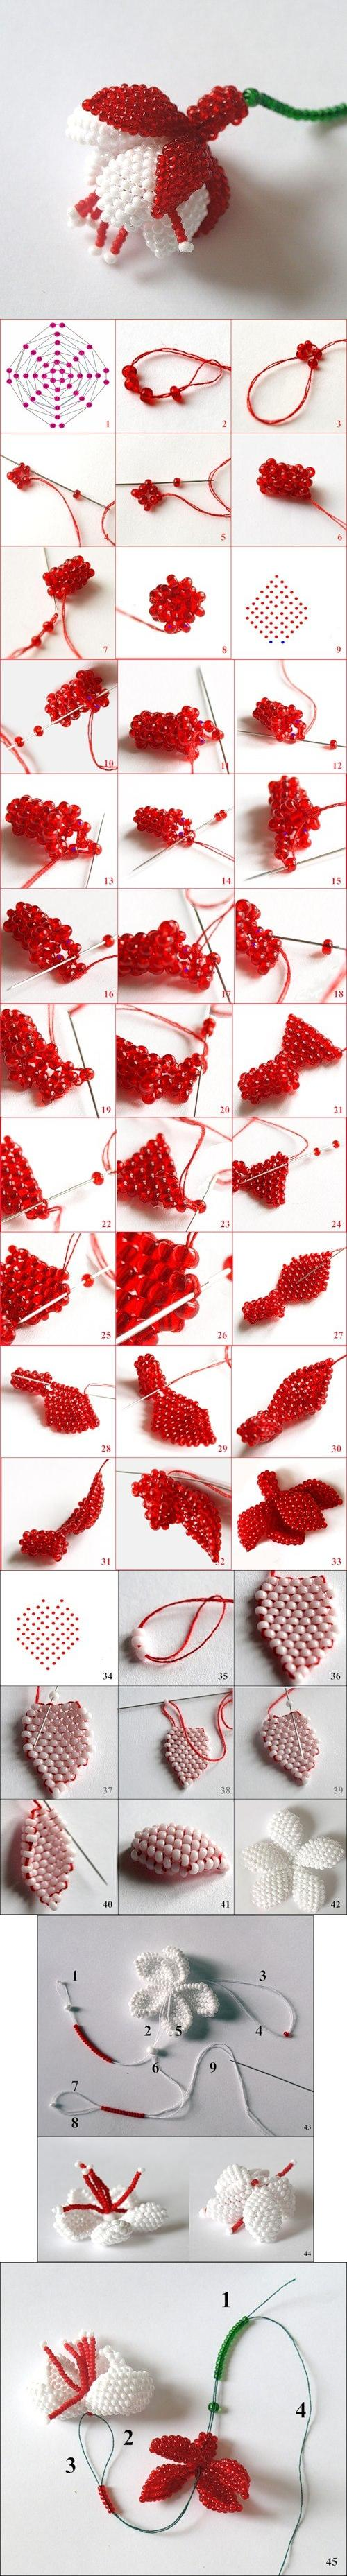 How to make beads or Pearls Fuchsia Flower step by step DIY tutorial instructions